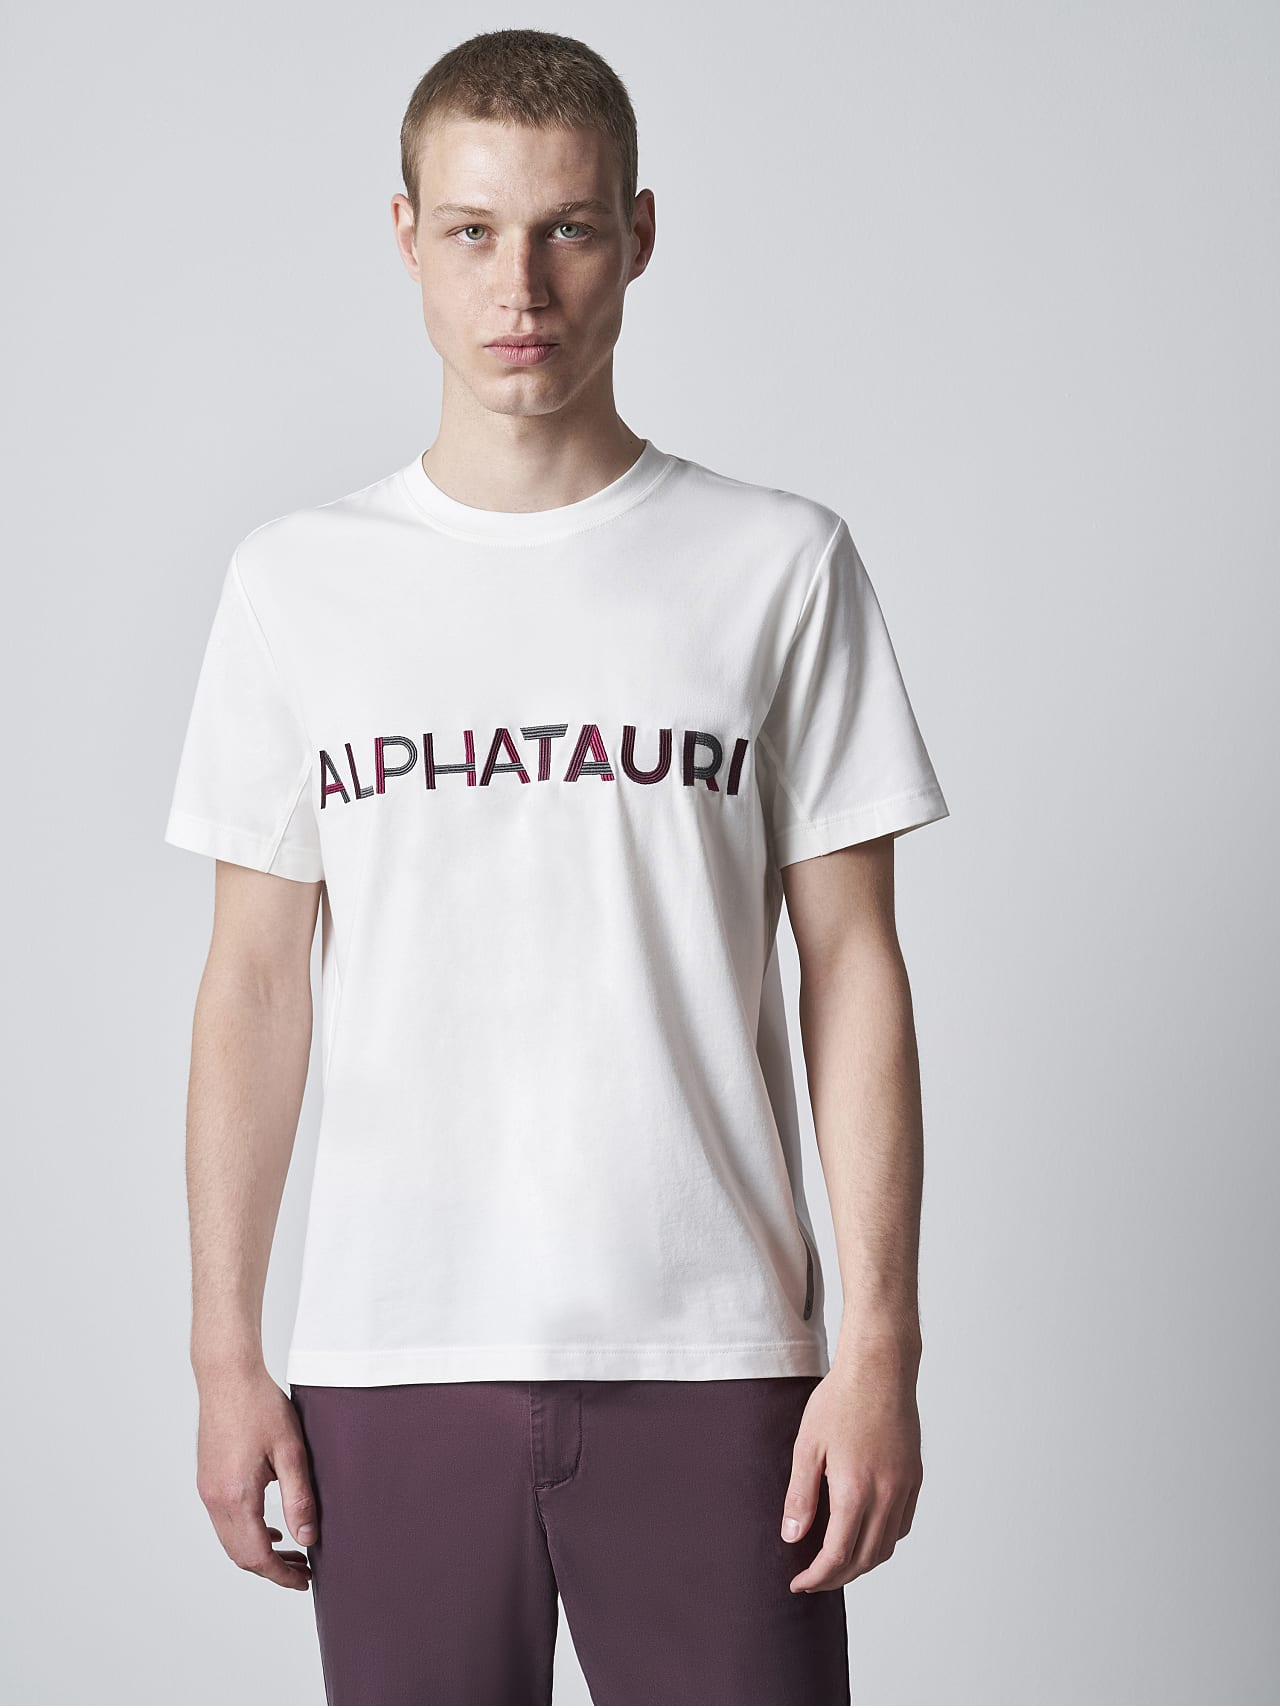 JANOS V3.Y5.02 Logo Embroidery T-Shirt offwhite Right Alpha Tauri